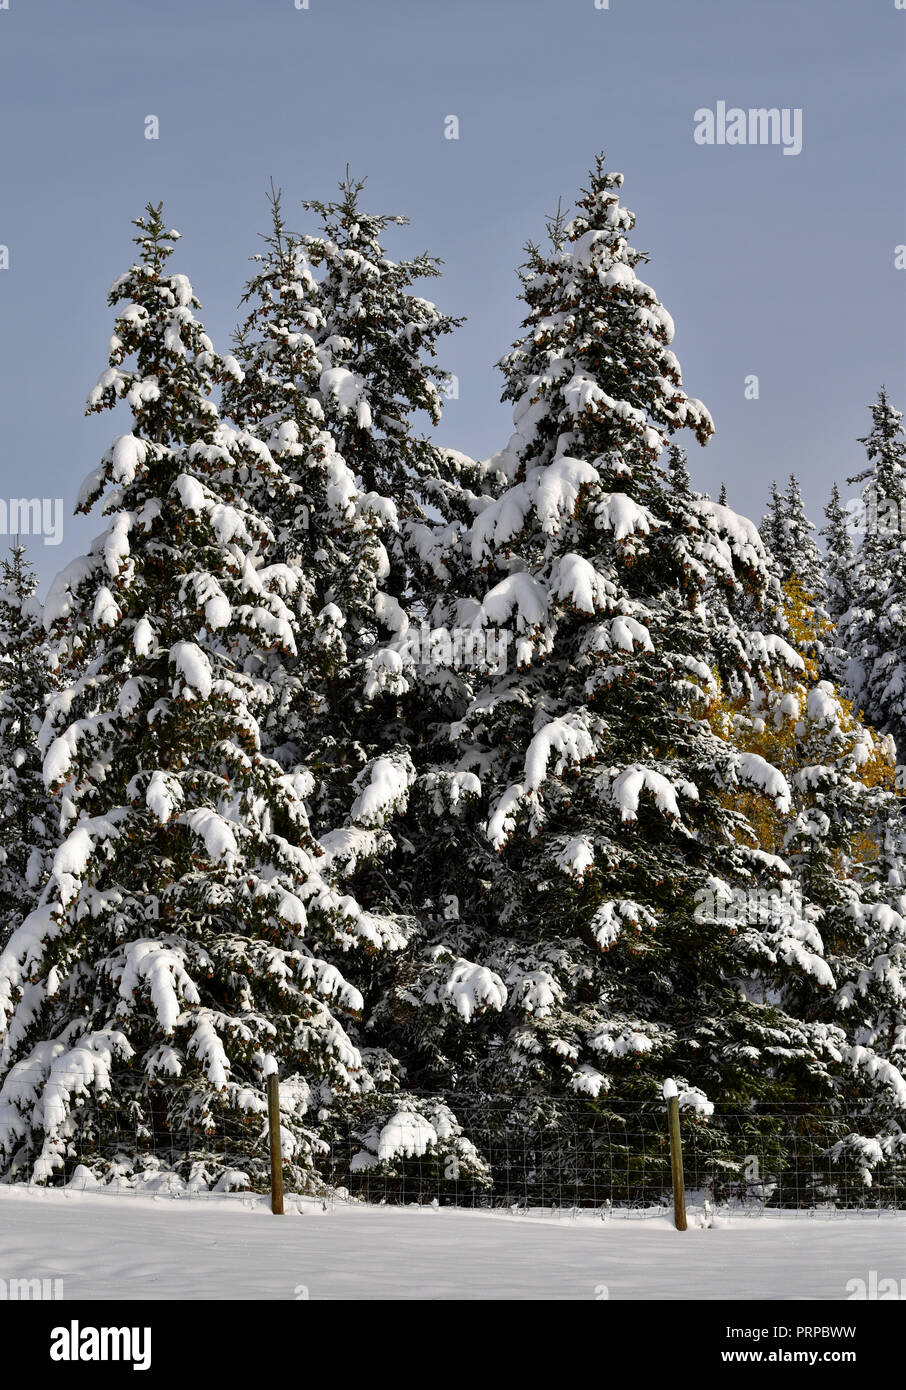 Trees bend under the weight of the first snow fall of the year. - Stock Image